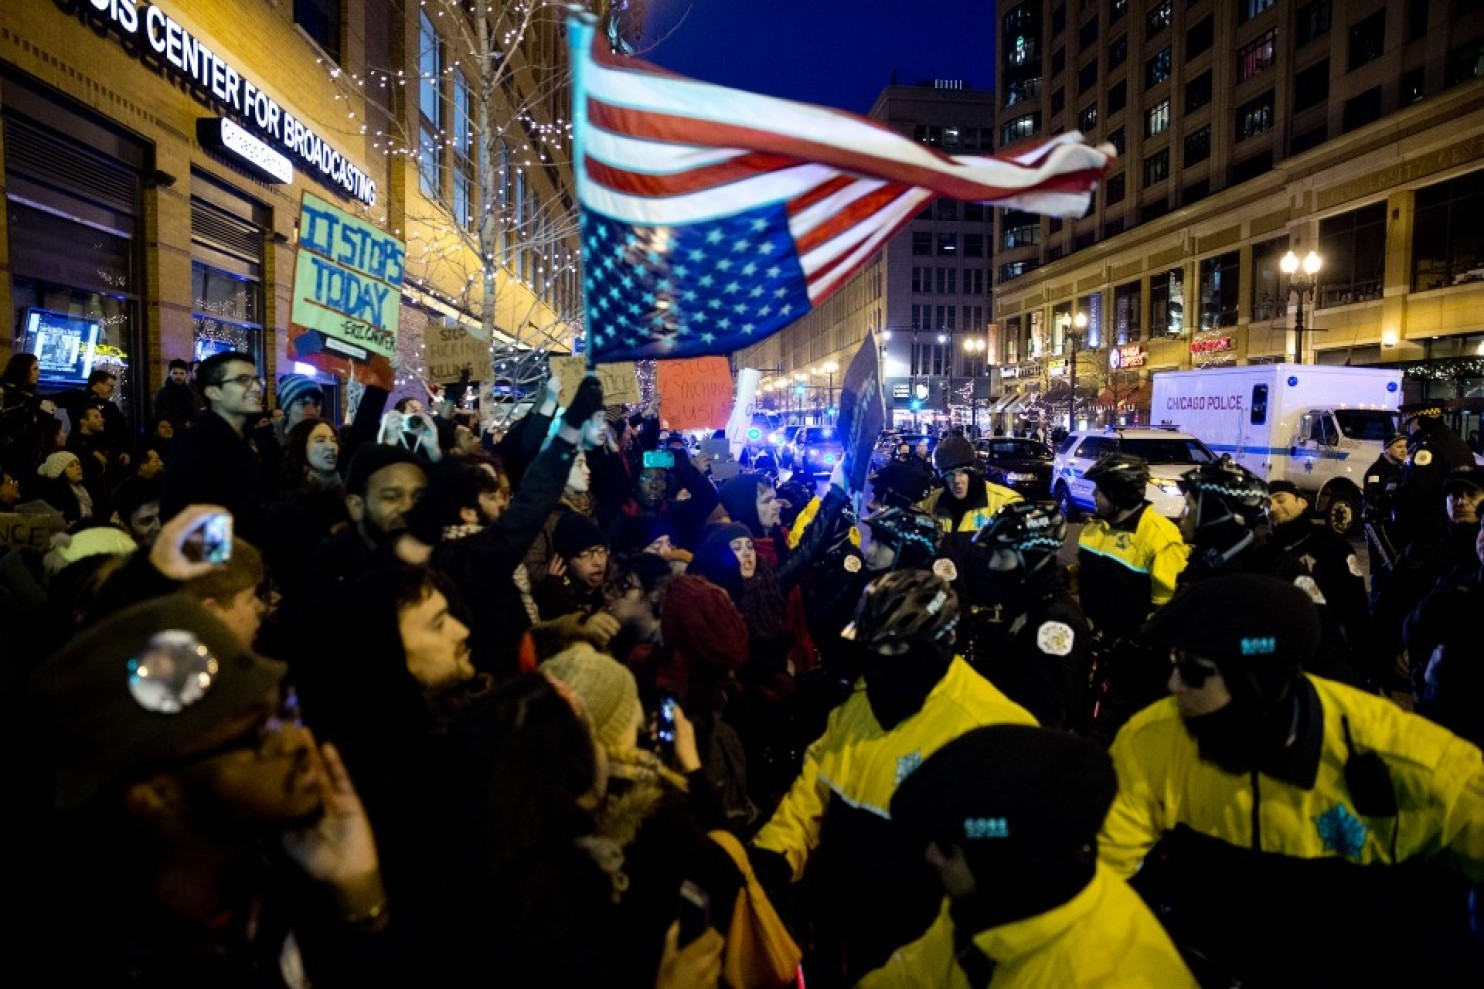 Protesters clash with Chicago police after grand jury decisions in police-involved deaths in December 2014. (Tasos Katopodis/Getty Images)